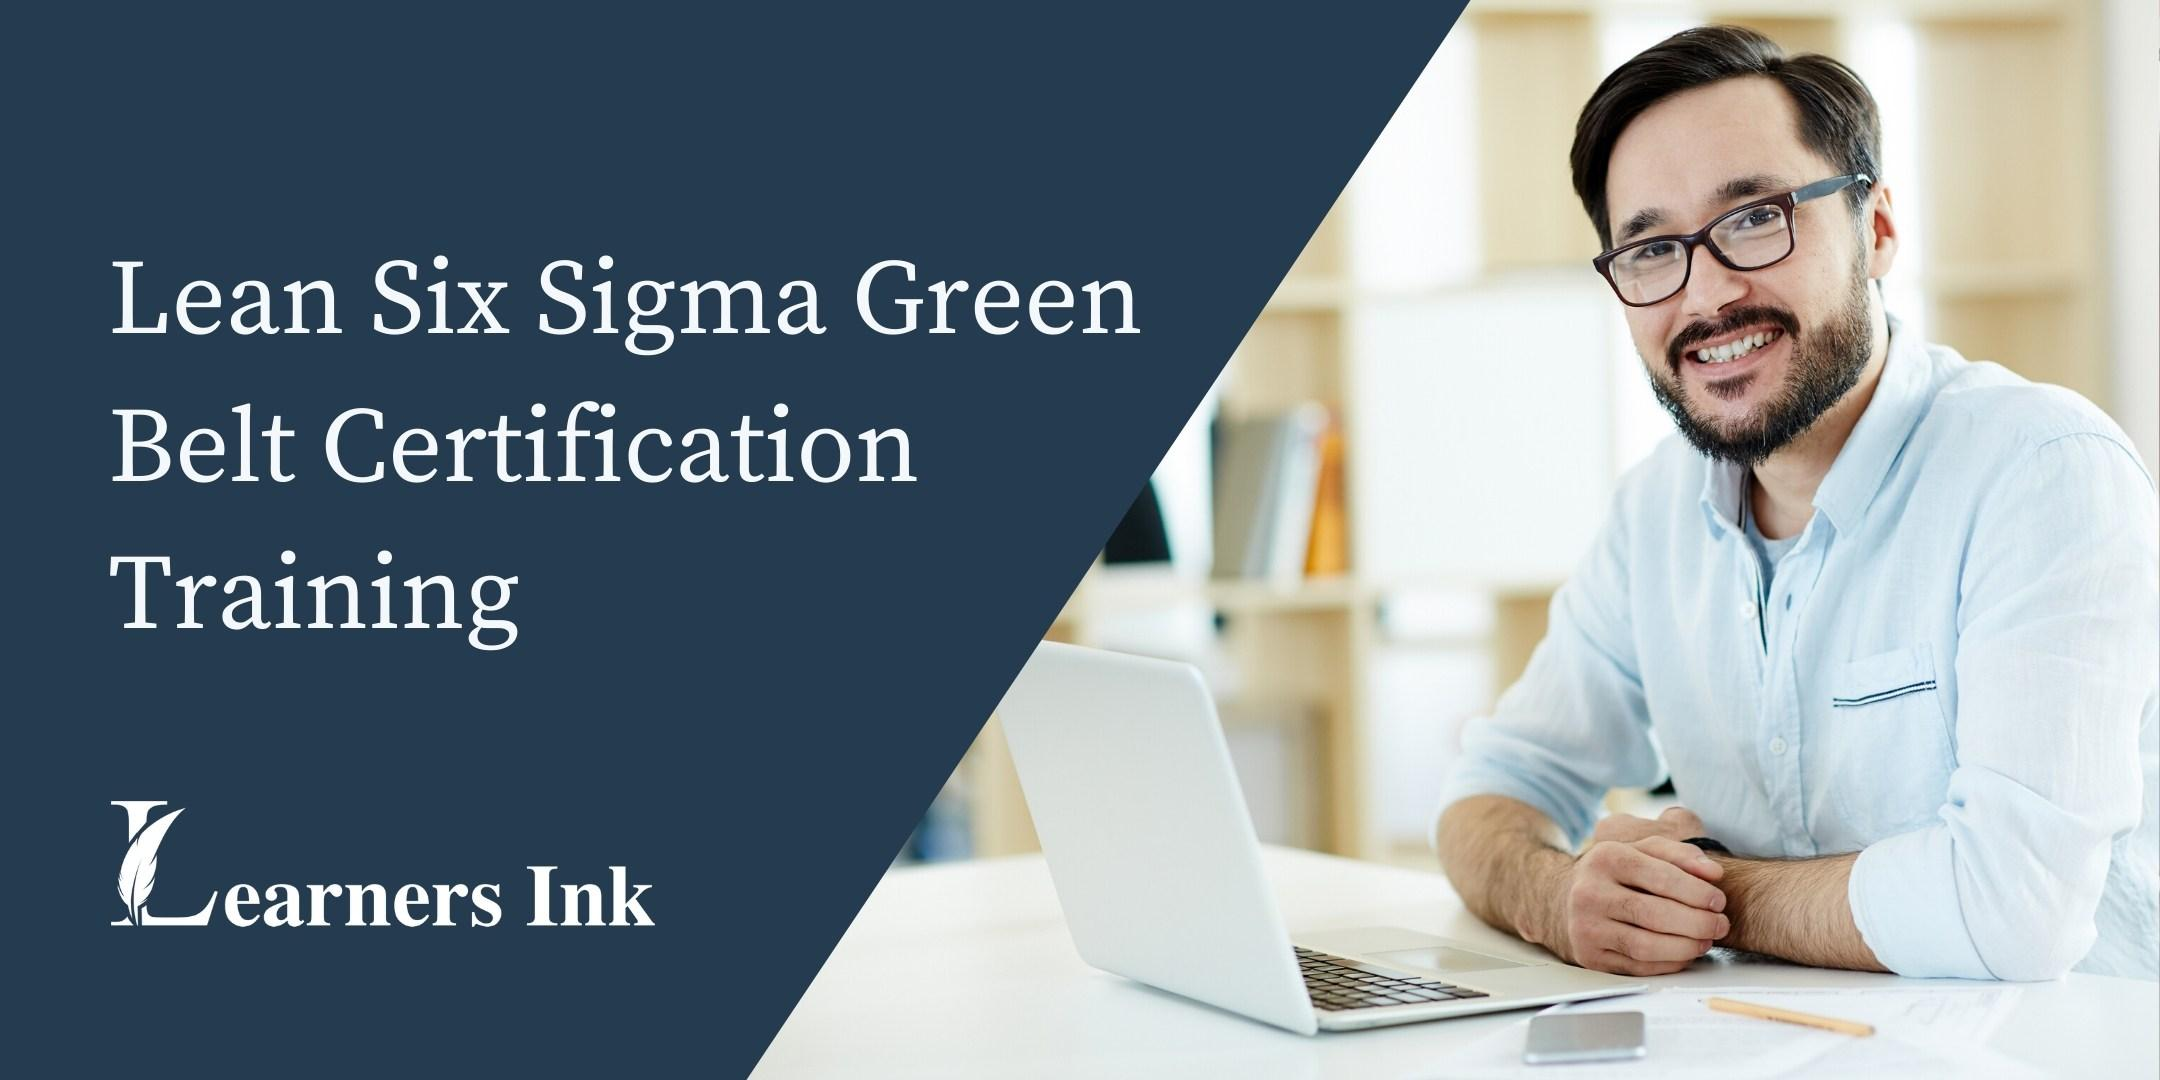 Lean Six Sigma Green Belt Certification Training Course (LSSGB) in Alice Springs